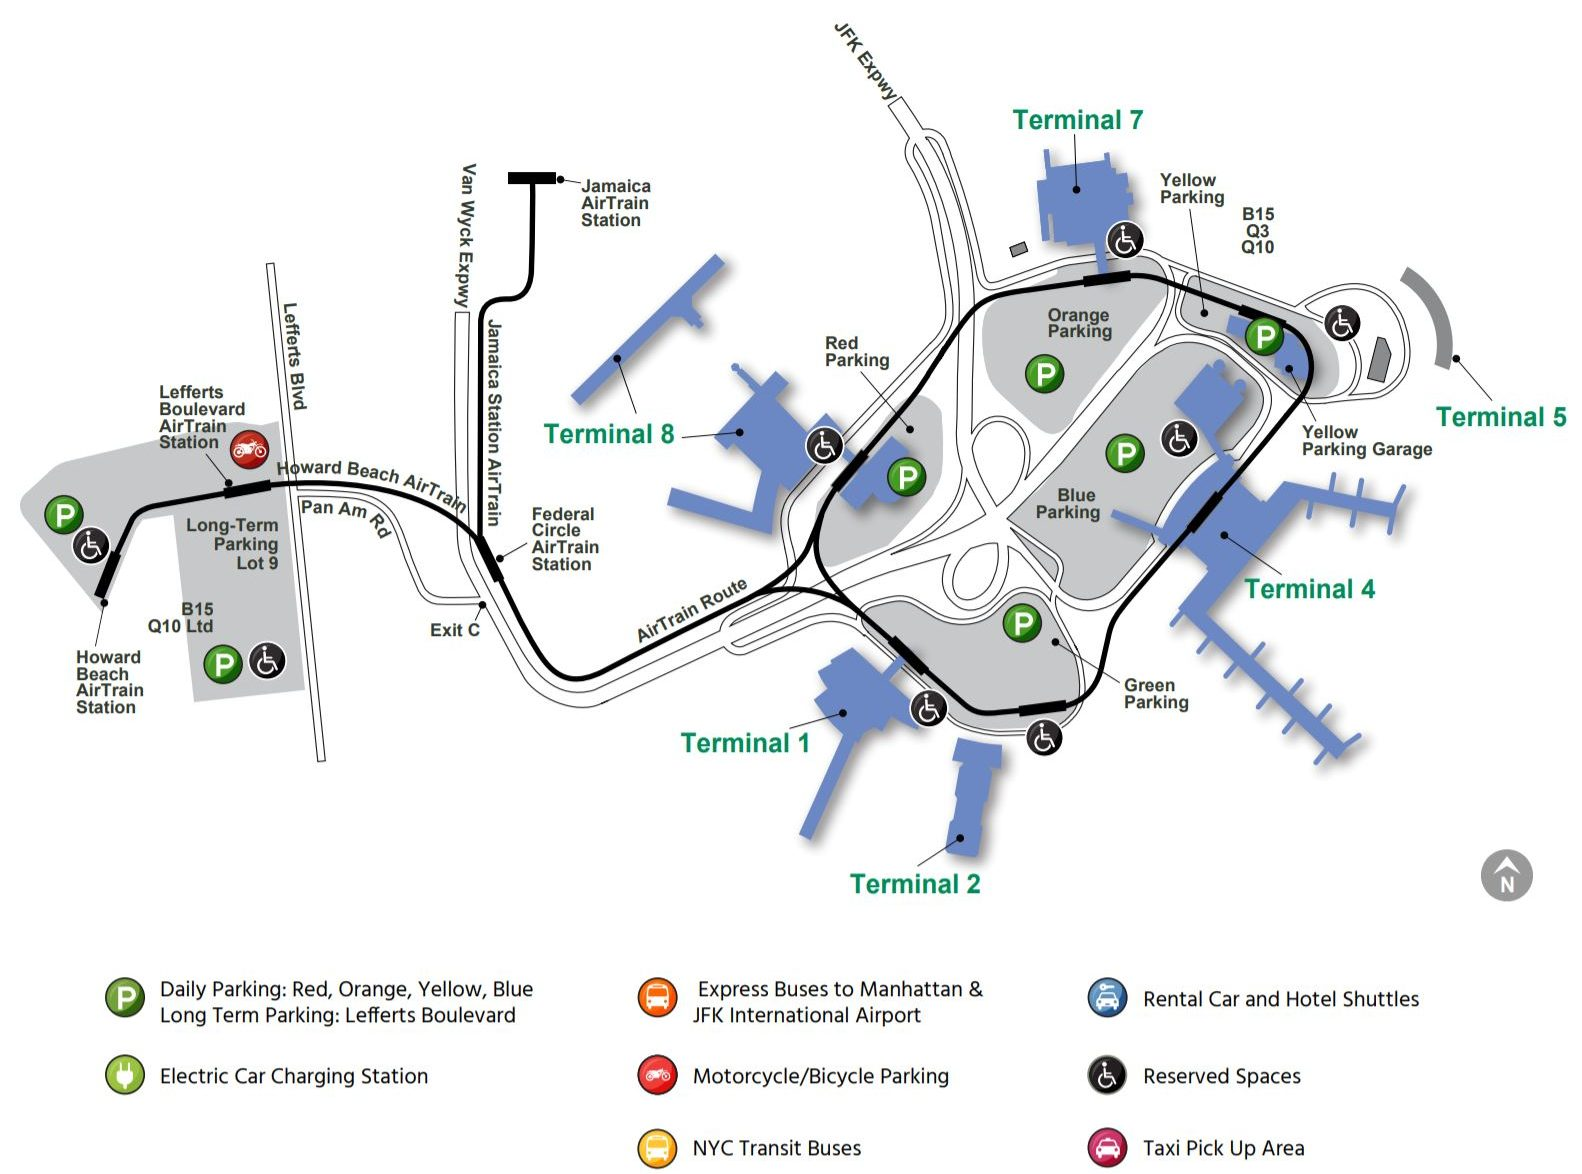 delta jfk terminal 4 map How To Get Between Terminals At Jfk International Airport 2020 delta jfk terminal 4 map